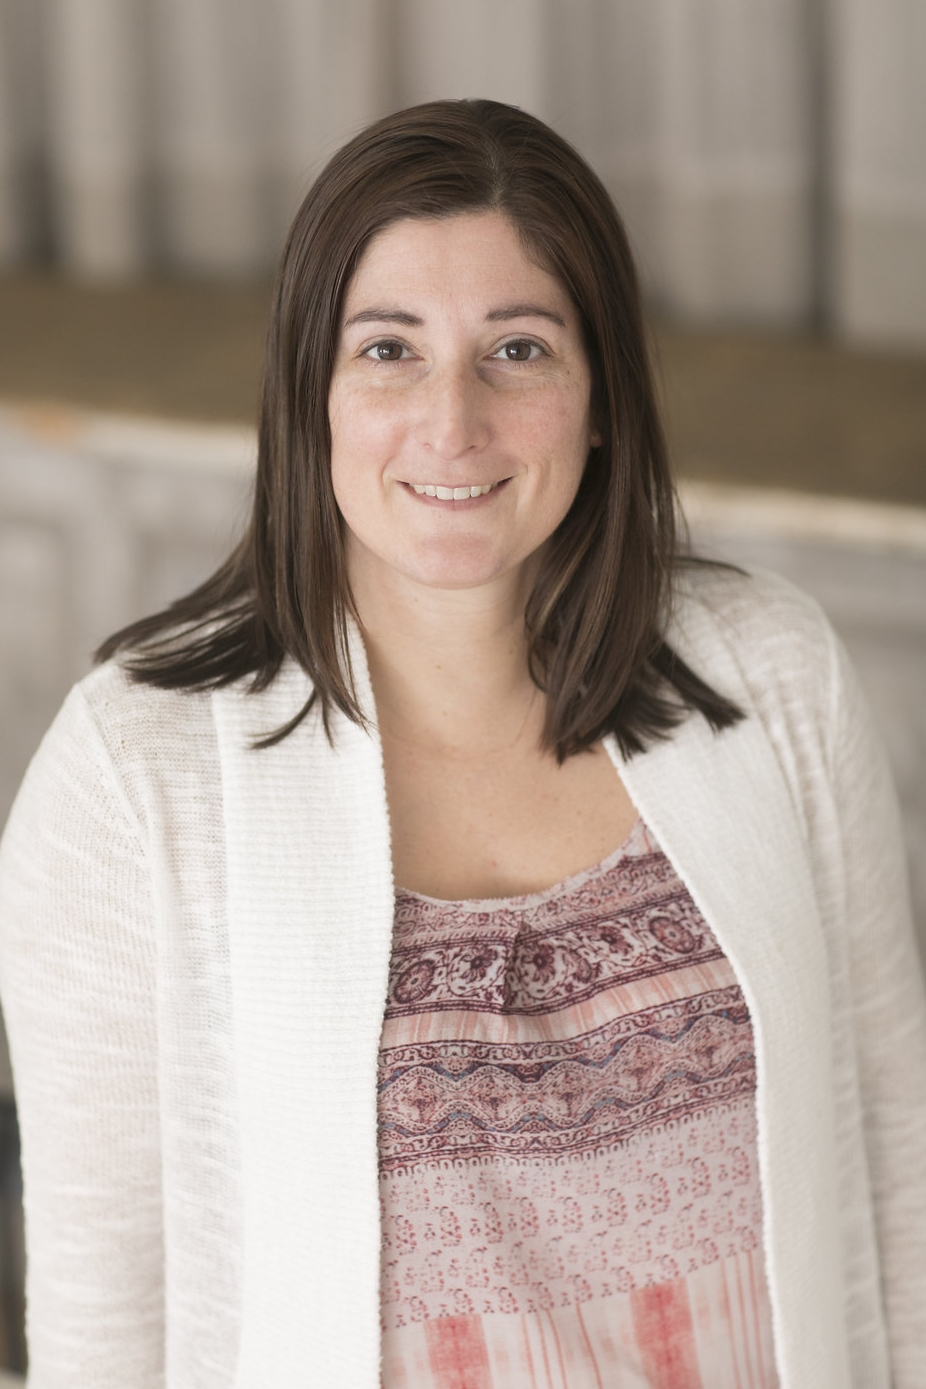 Business Manager   Erin Delottie has over 15 years of experience as a business manager split between the finance and interior design industries. She is a graduate of Carnegie Mellon University.